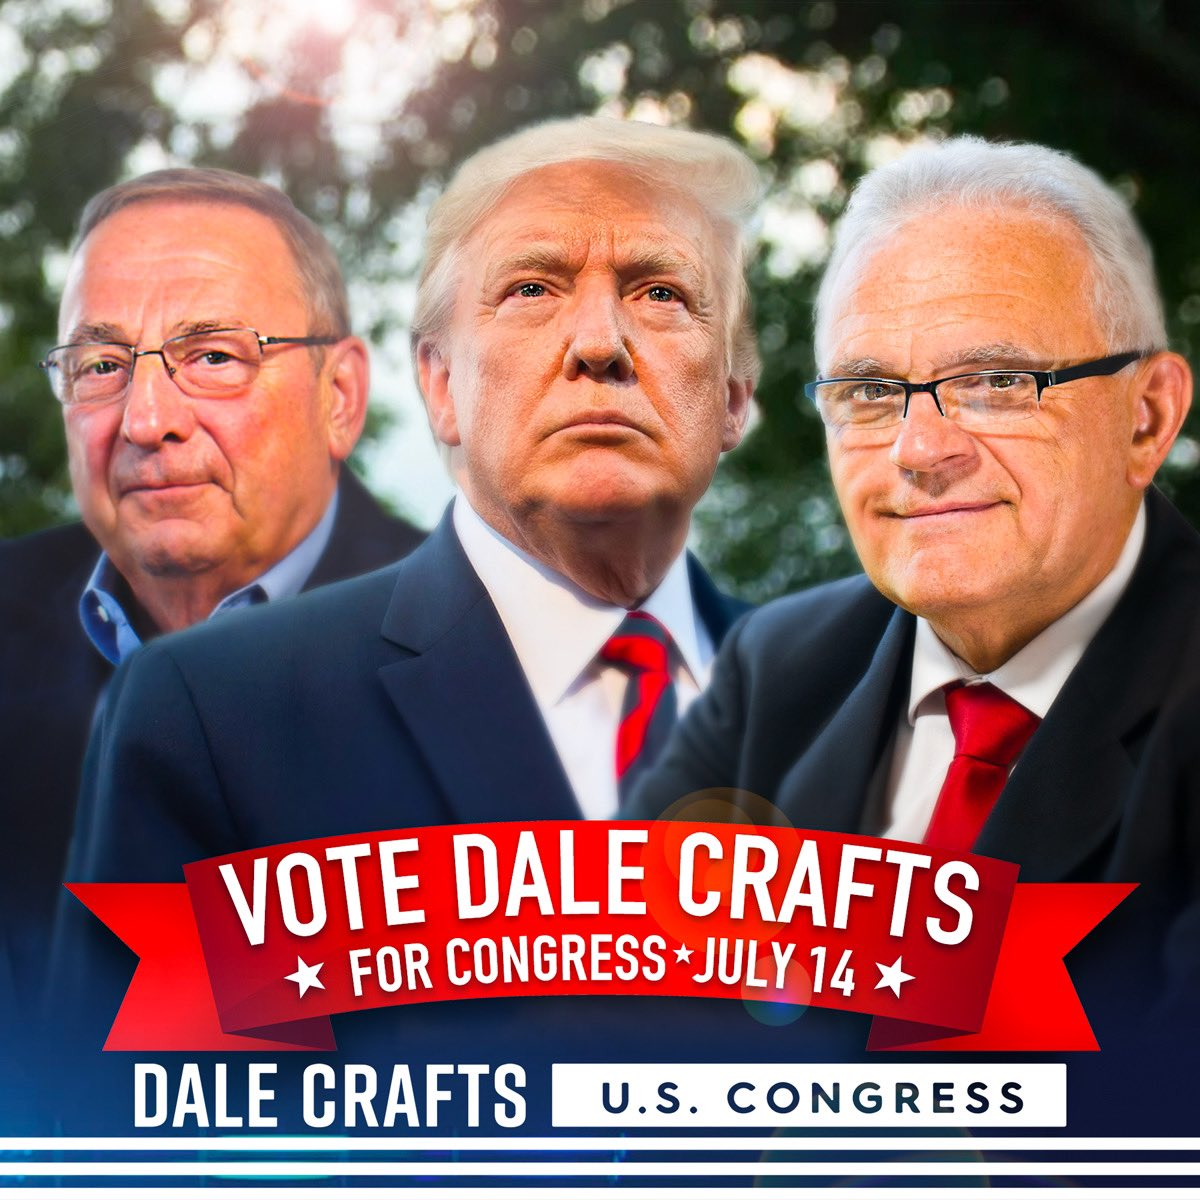 Today is the Day! I am proud to have run a positive campaign on my story & experience. @PaulLePage @PaulRLePage1 and @realDonaldTrump, are counting on YOU to cast your ballot today. I hope I have earned your vote.  https://t.co/B8XJrI9FXB https://t.co/1NWPhbTvXZ